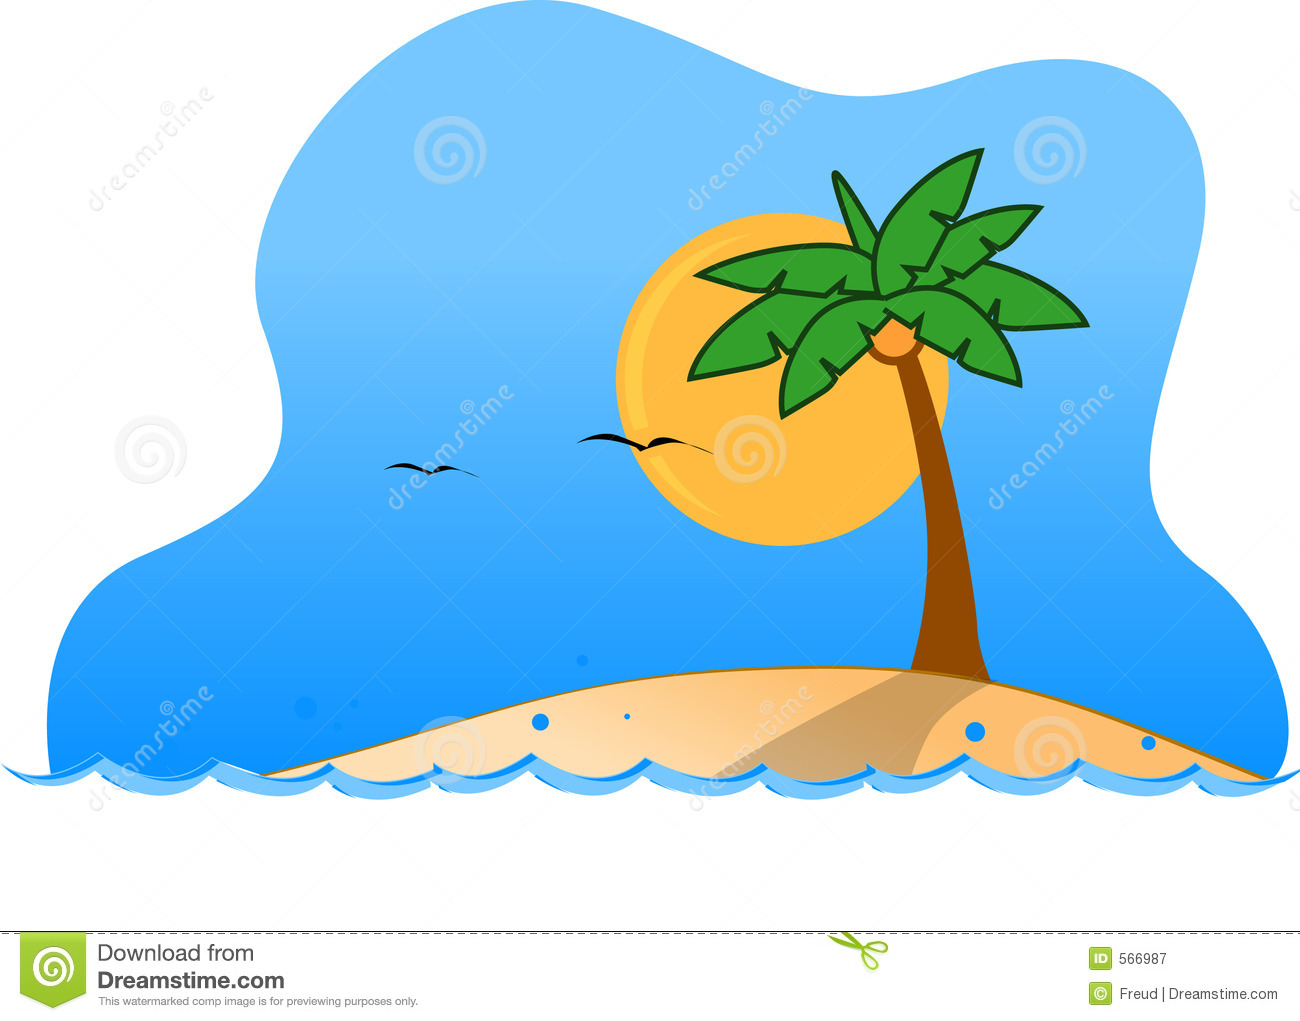 Tropical island images free clipart jpg library stock Tropical Island Clipart | Clipart Panda - Free Clipart Images jpg library stock